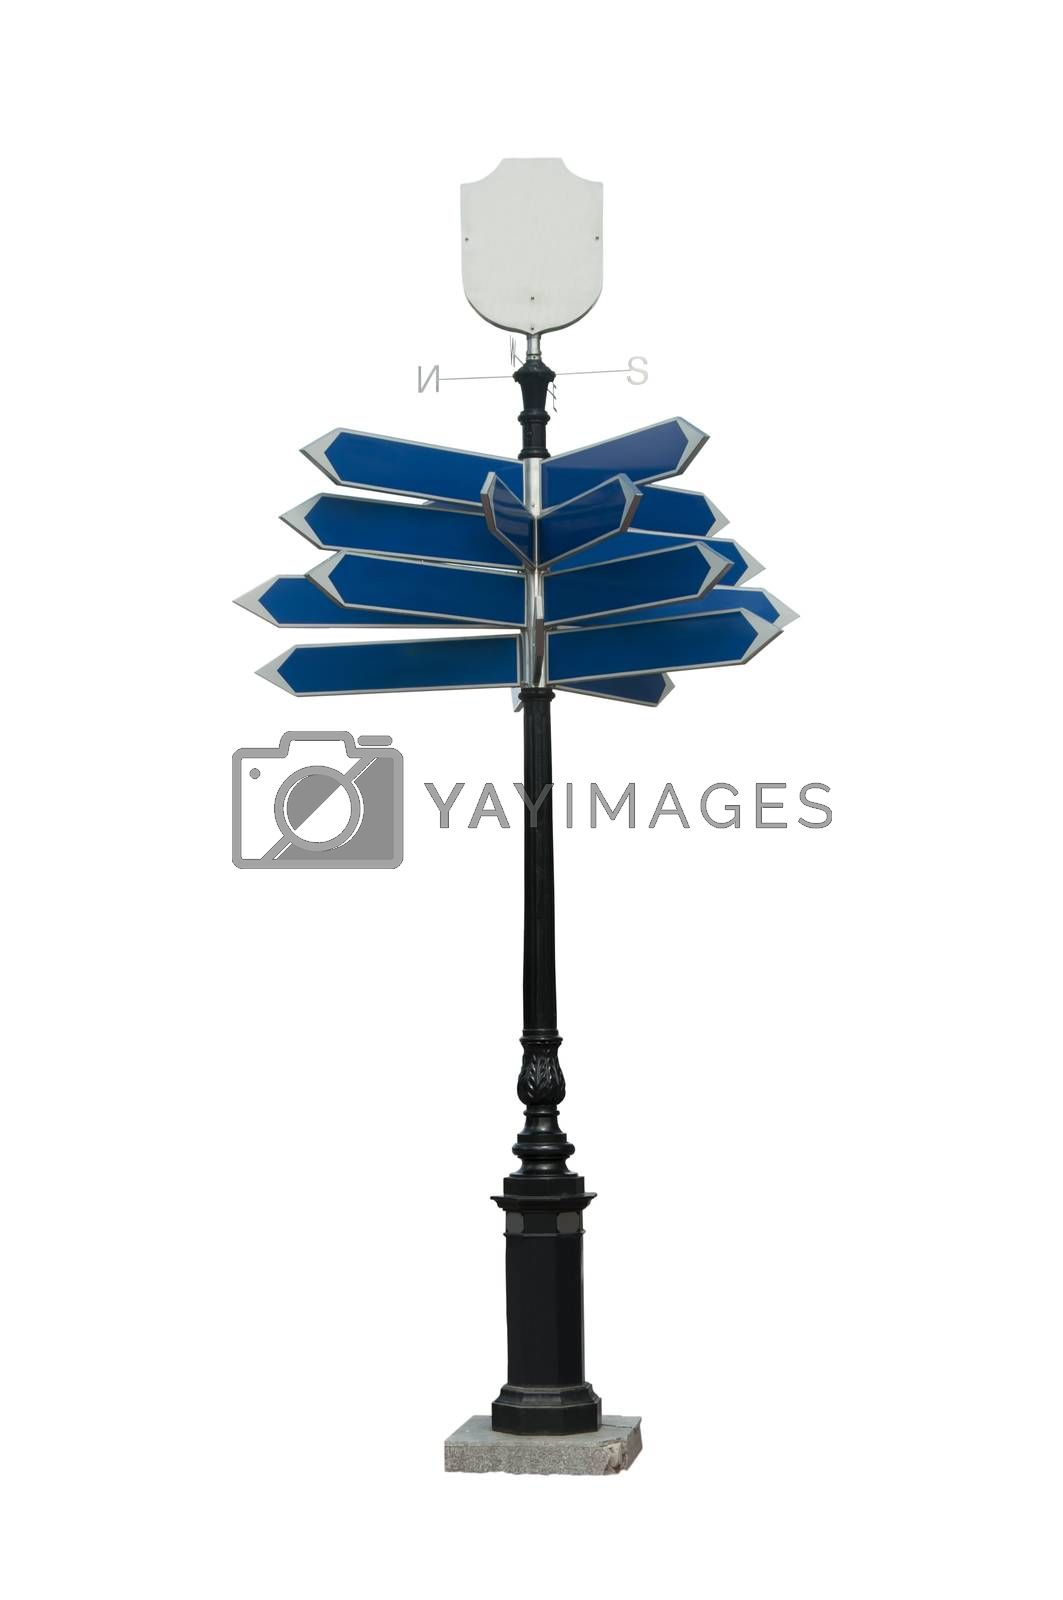 Big sign with directions. Isolated on white background